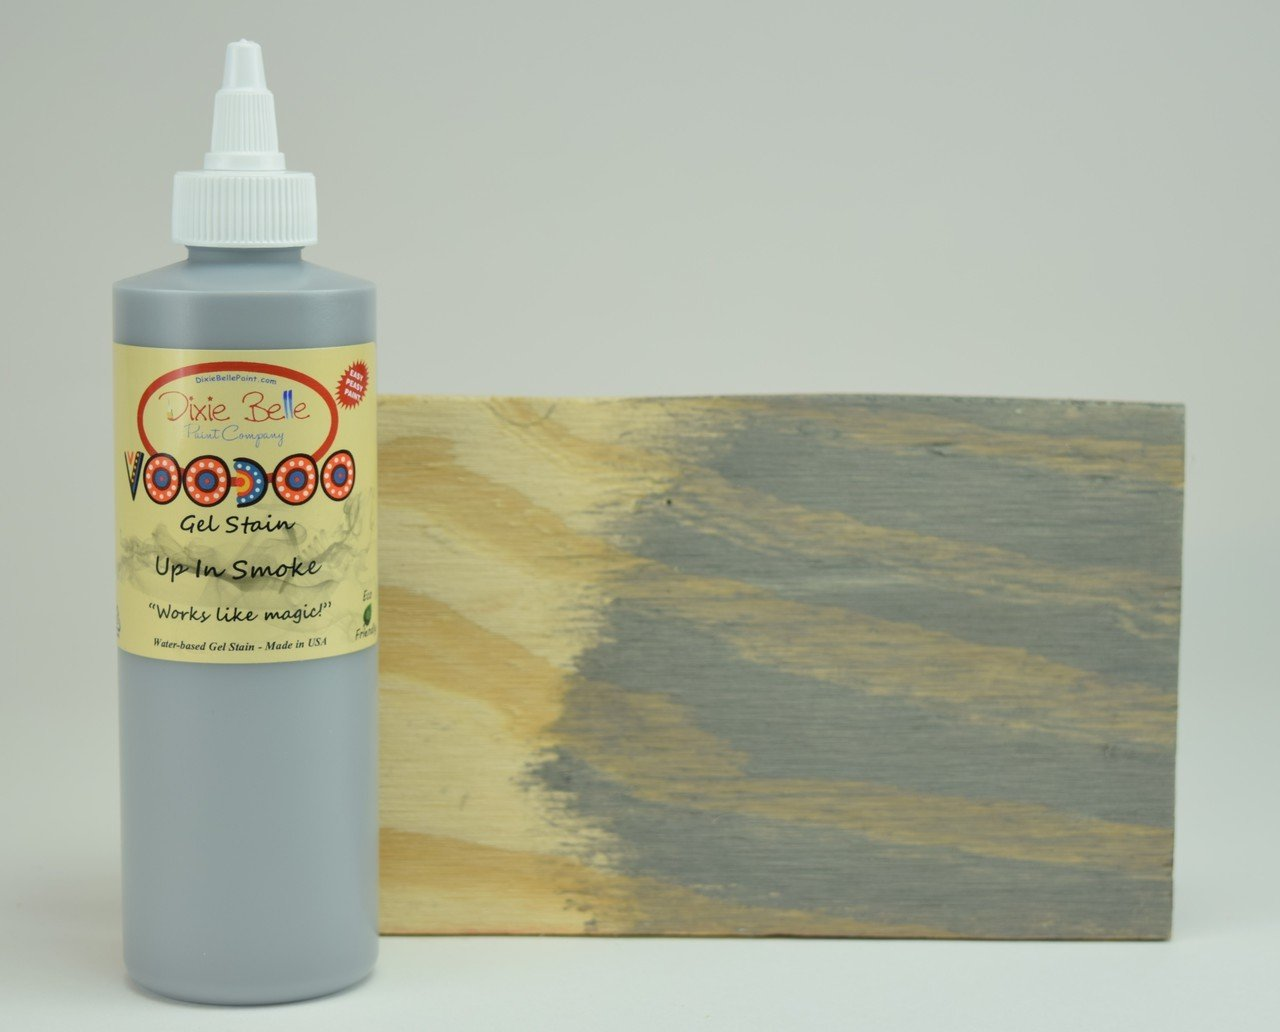 Dixie Belle Paint Company Voodoo Gel Stain (Up in Smoke)